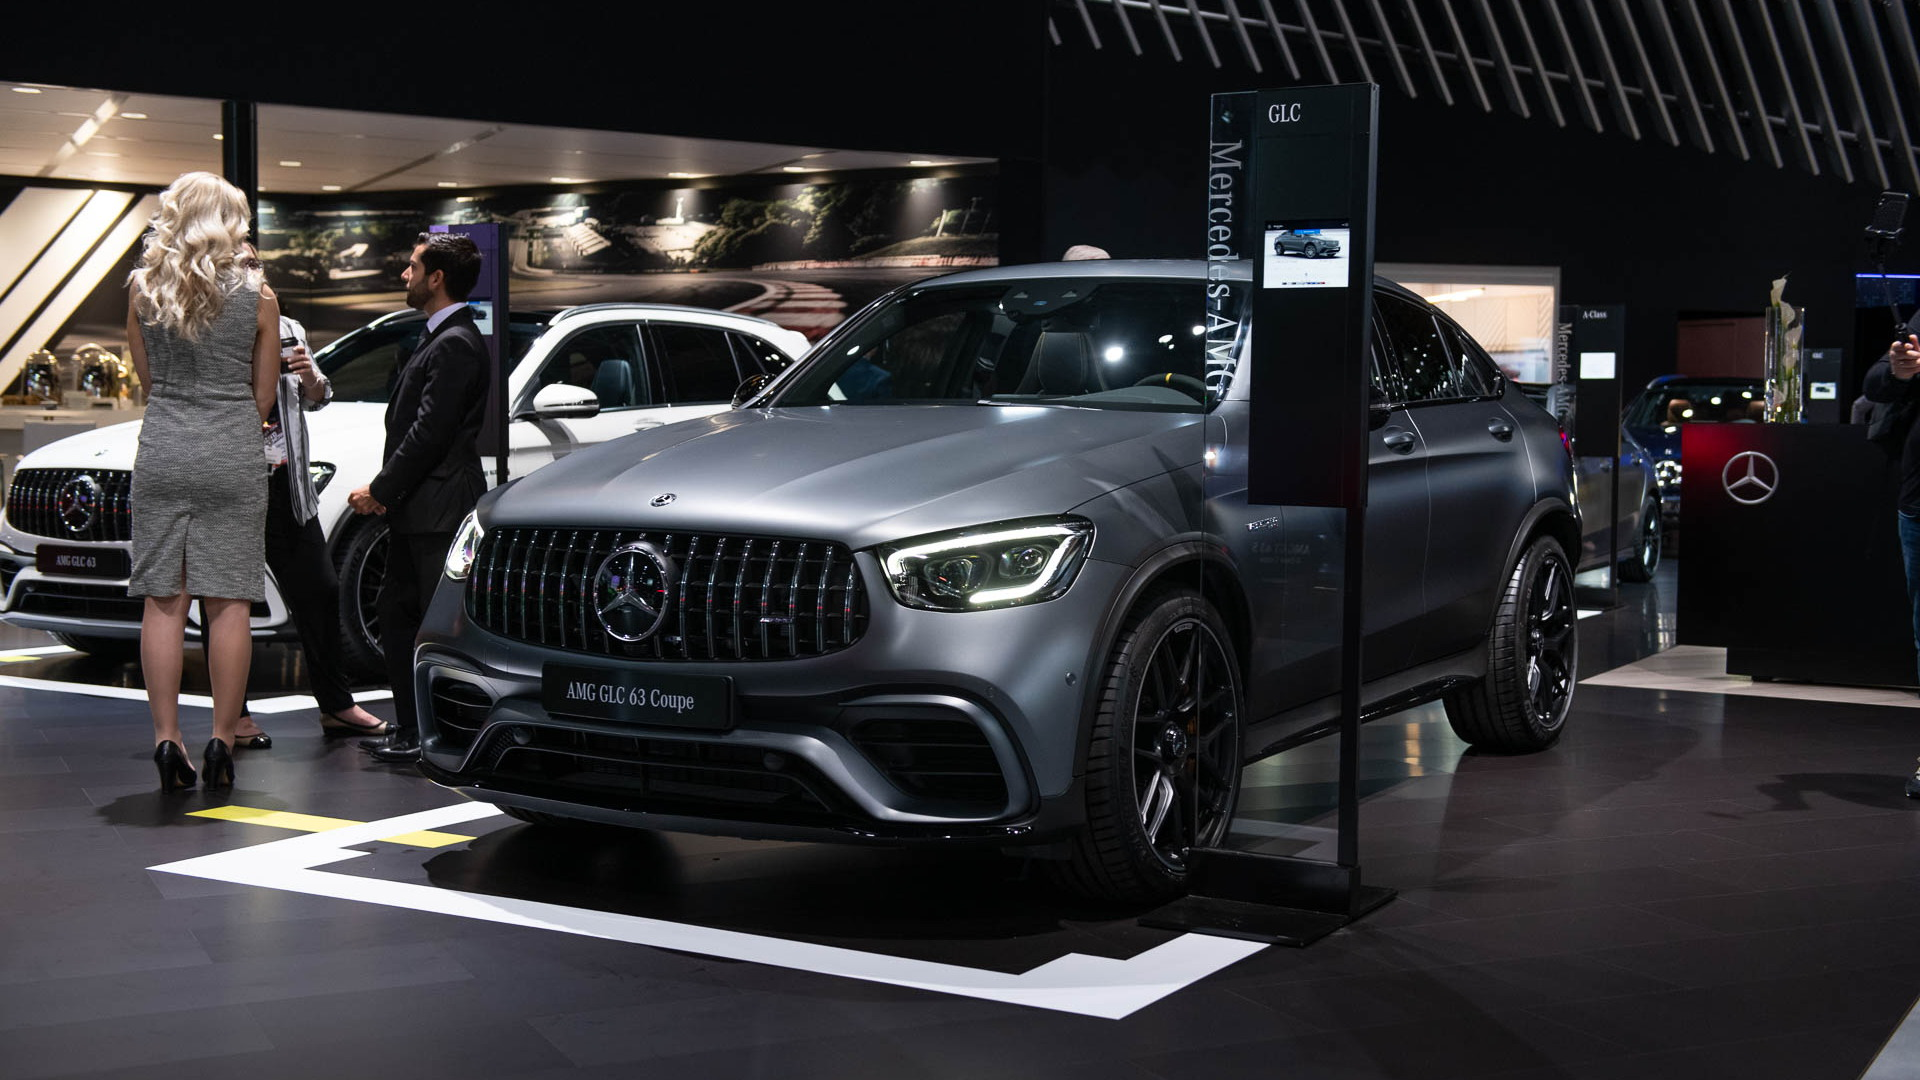 2020 Mercedes-Benz GLC63 Coupe, 2019 New York International Auto Show